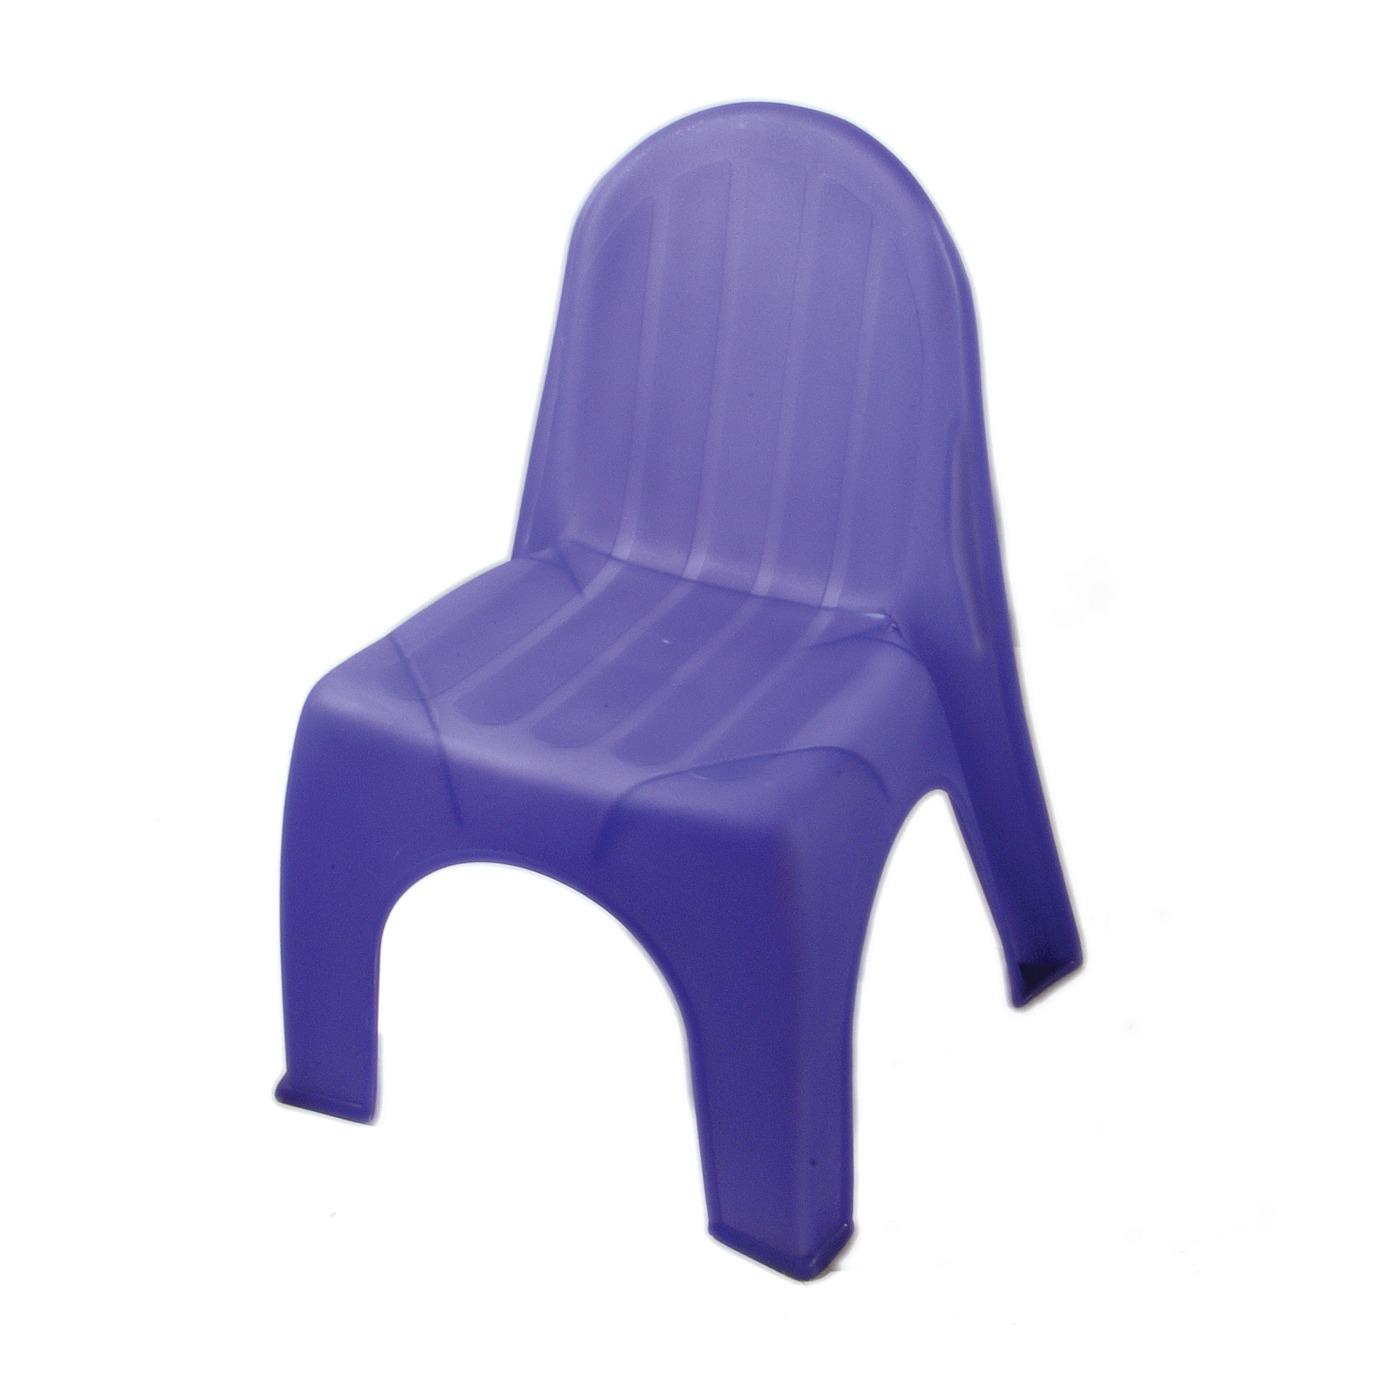 Plastic Children's Chair - Purple